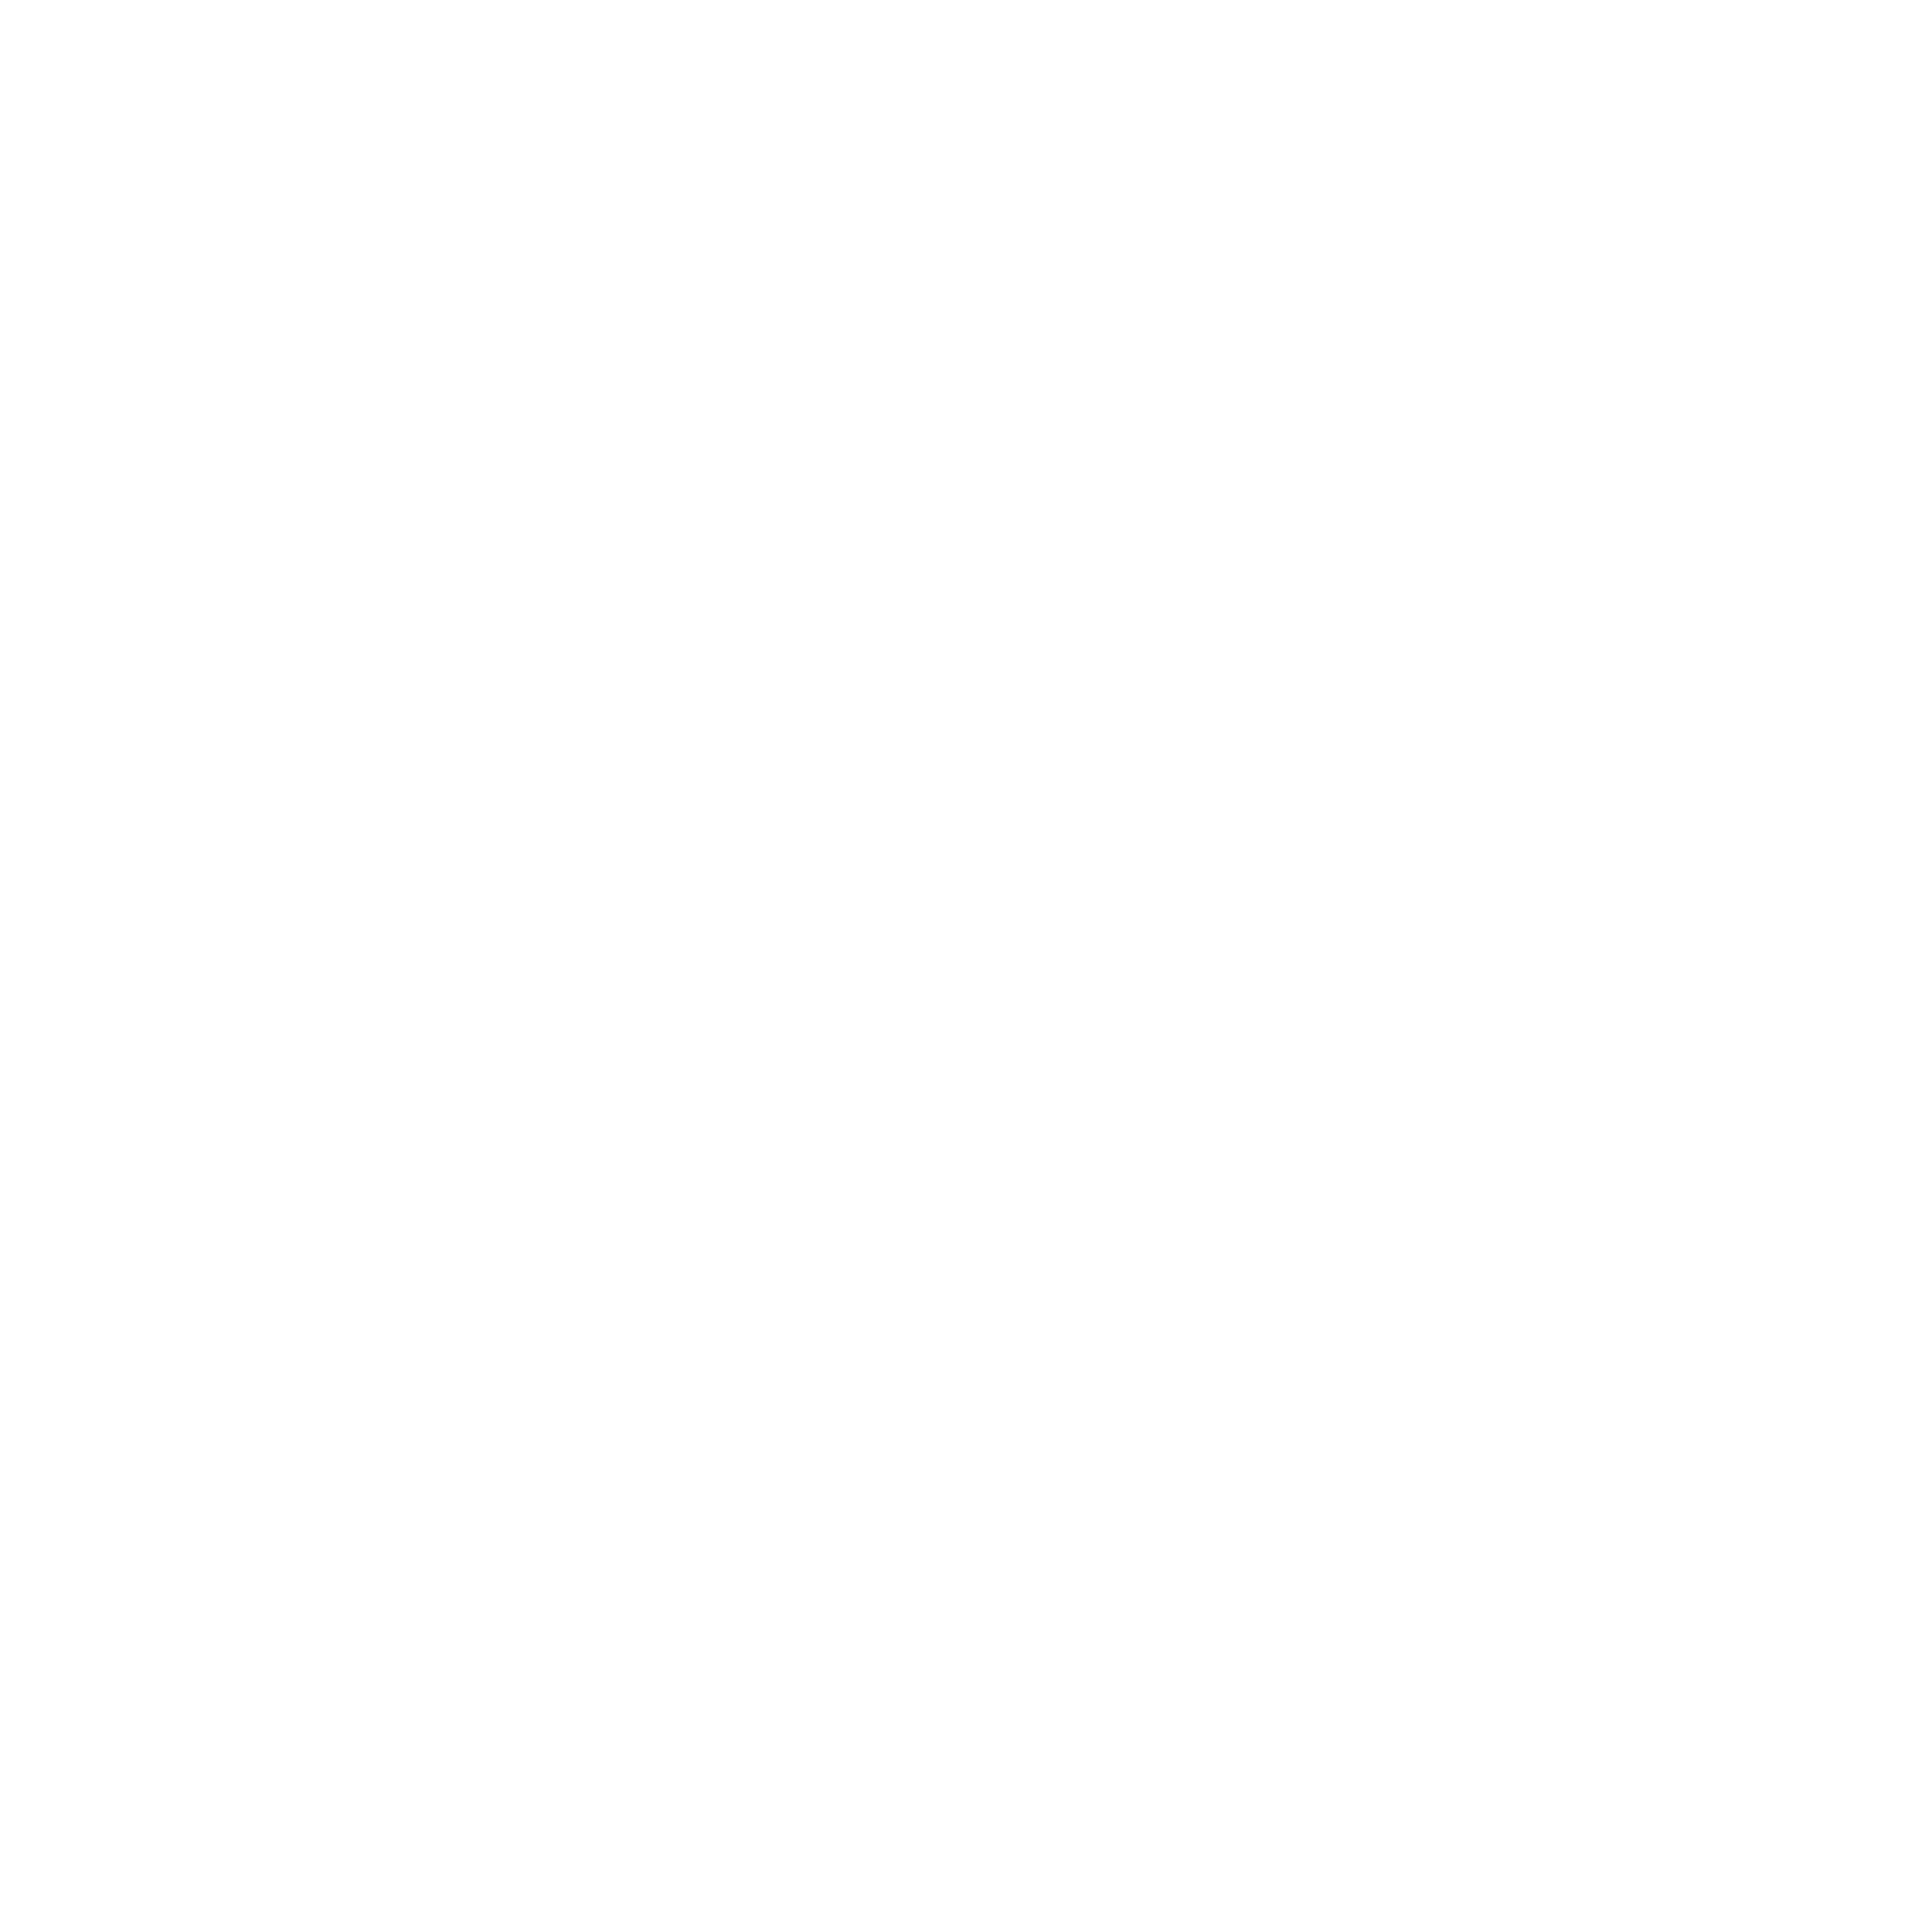 bawcoLogo_4k_navywebsite-inverse.png